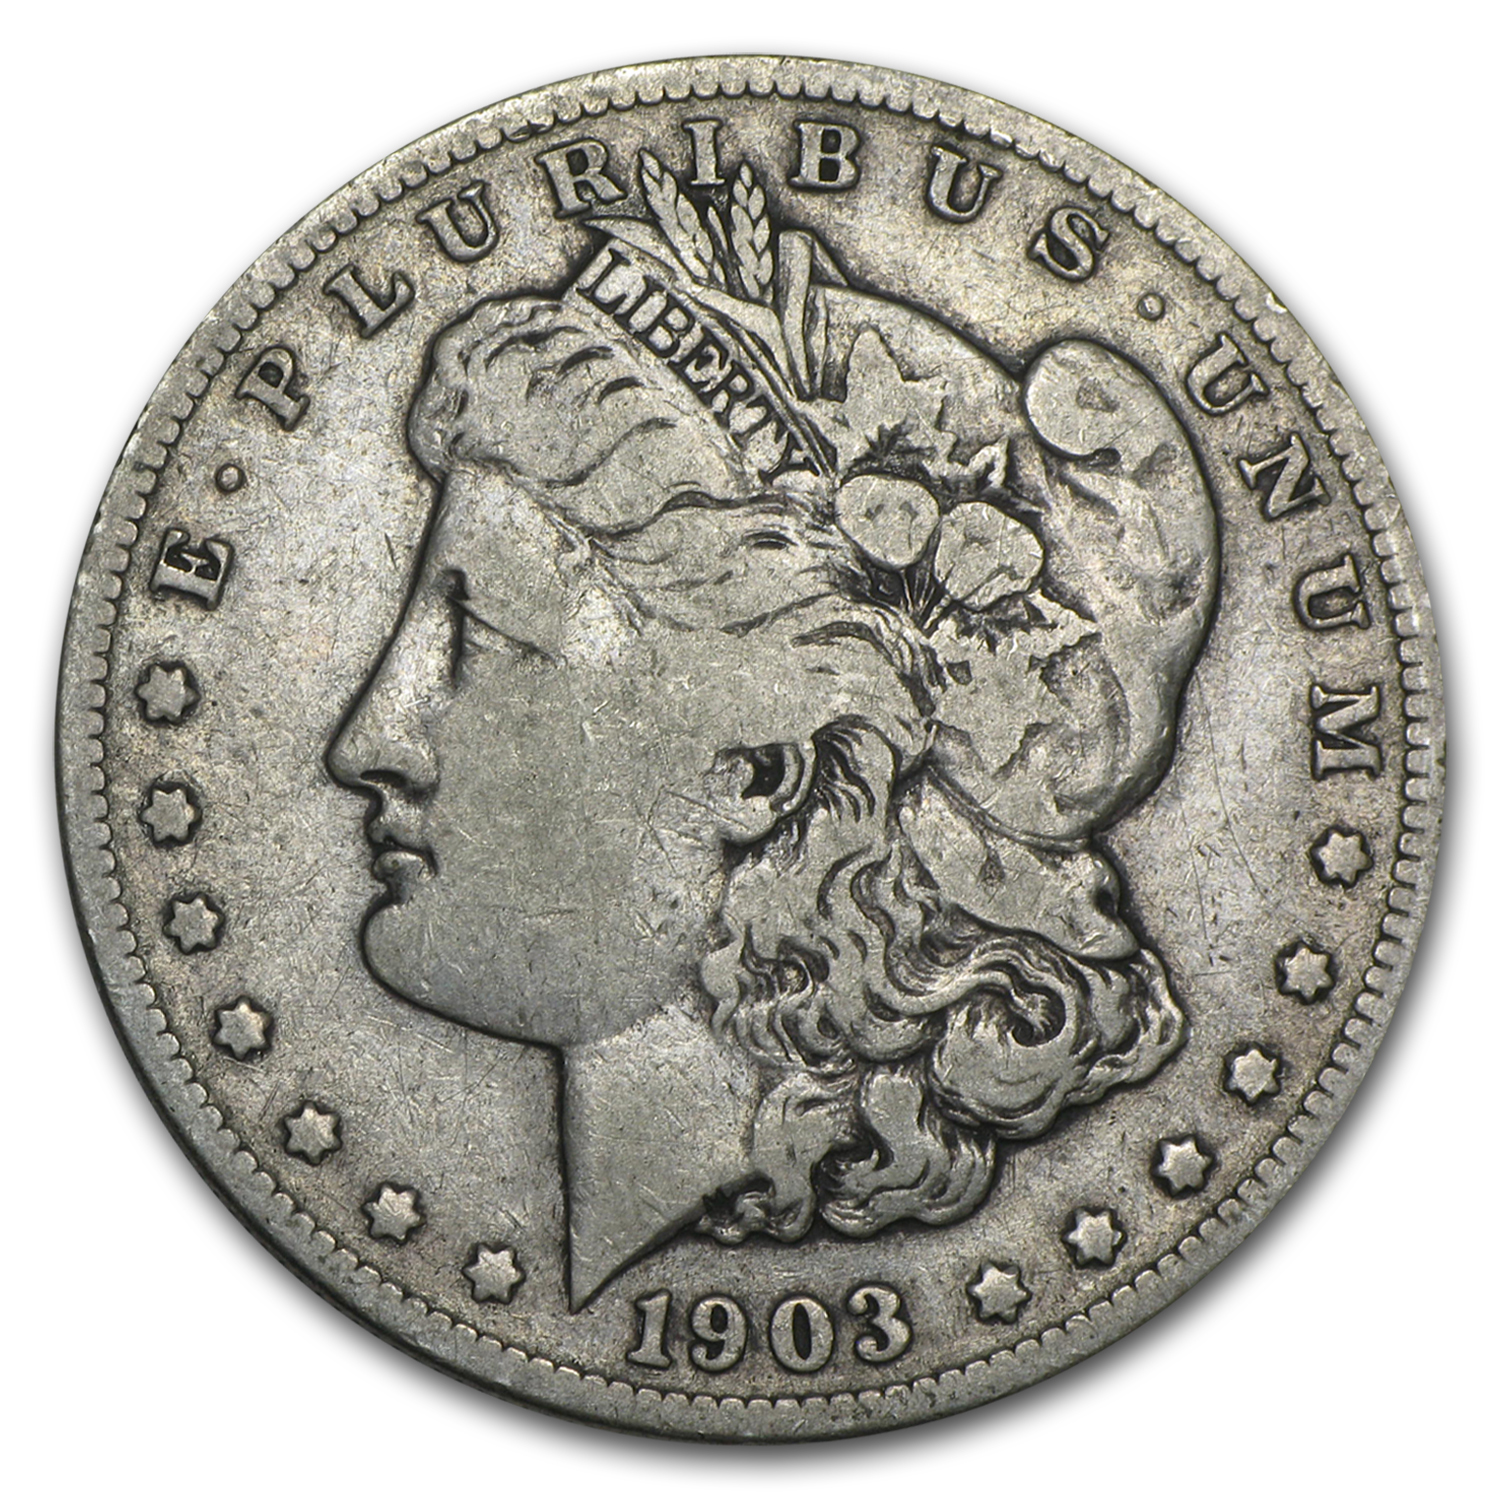 1903-S Morgan Dollar - Fine